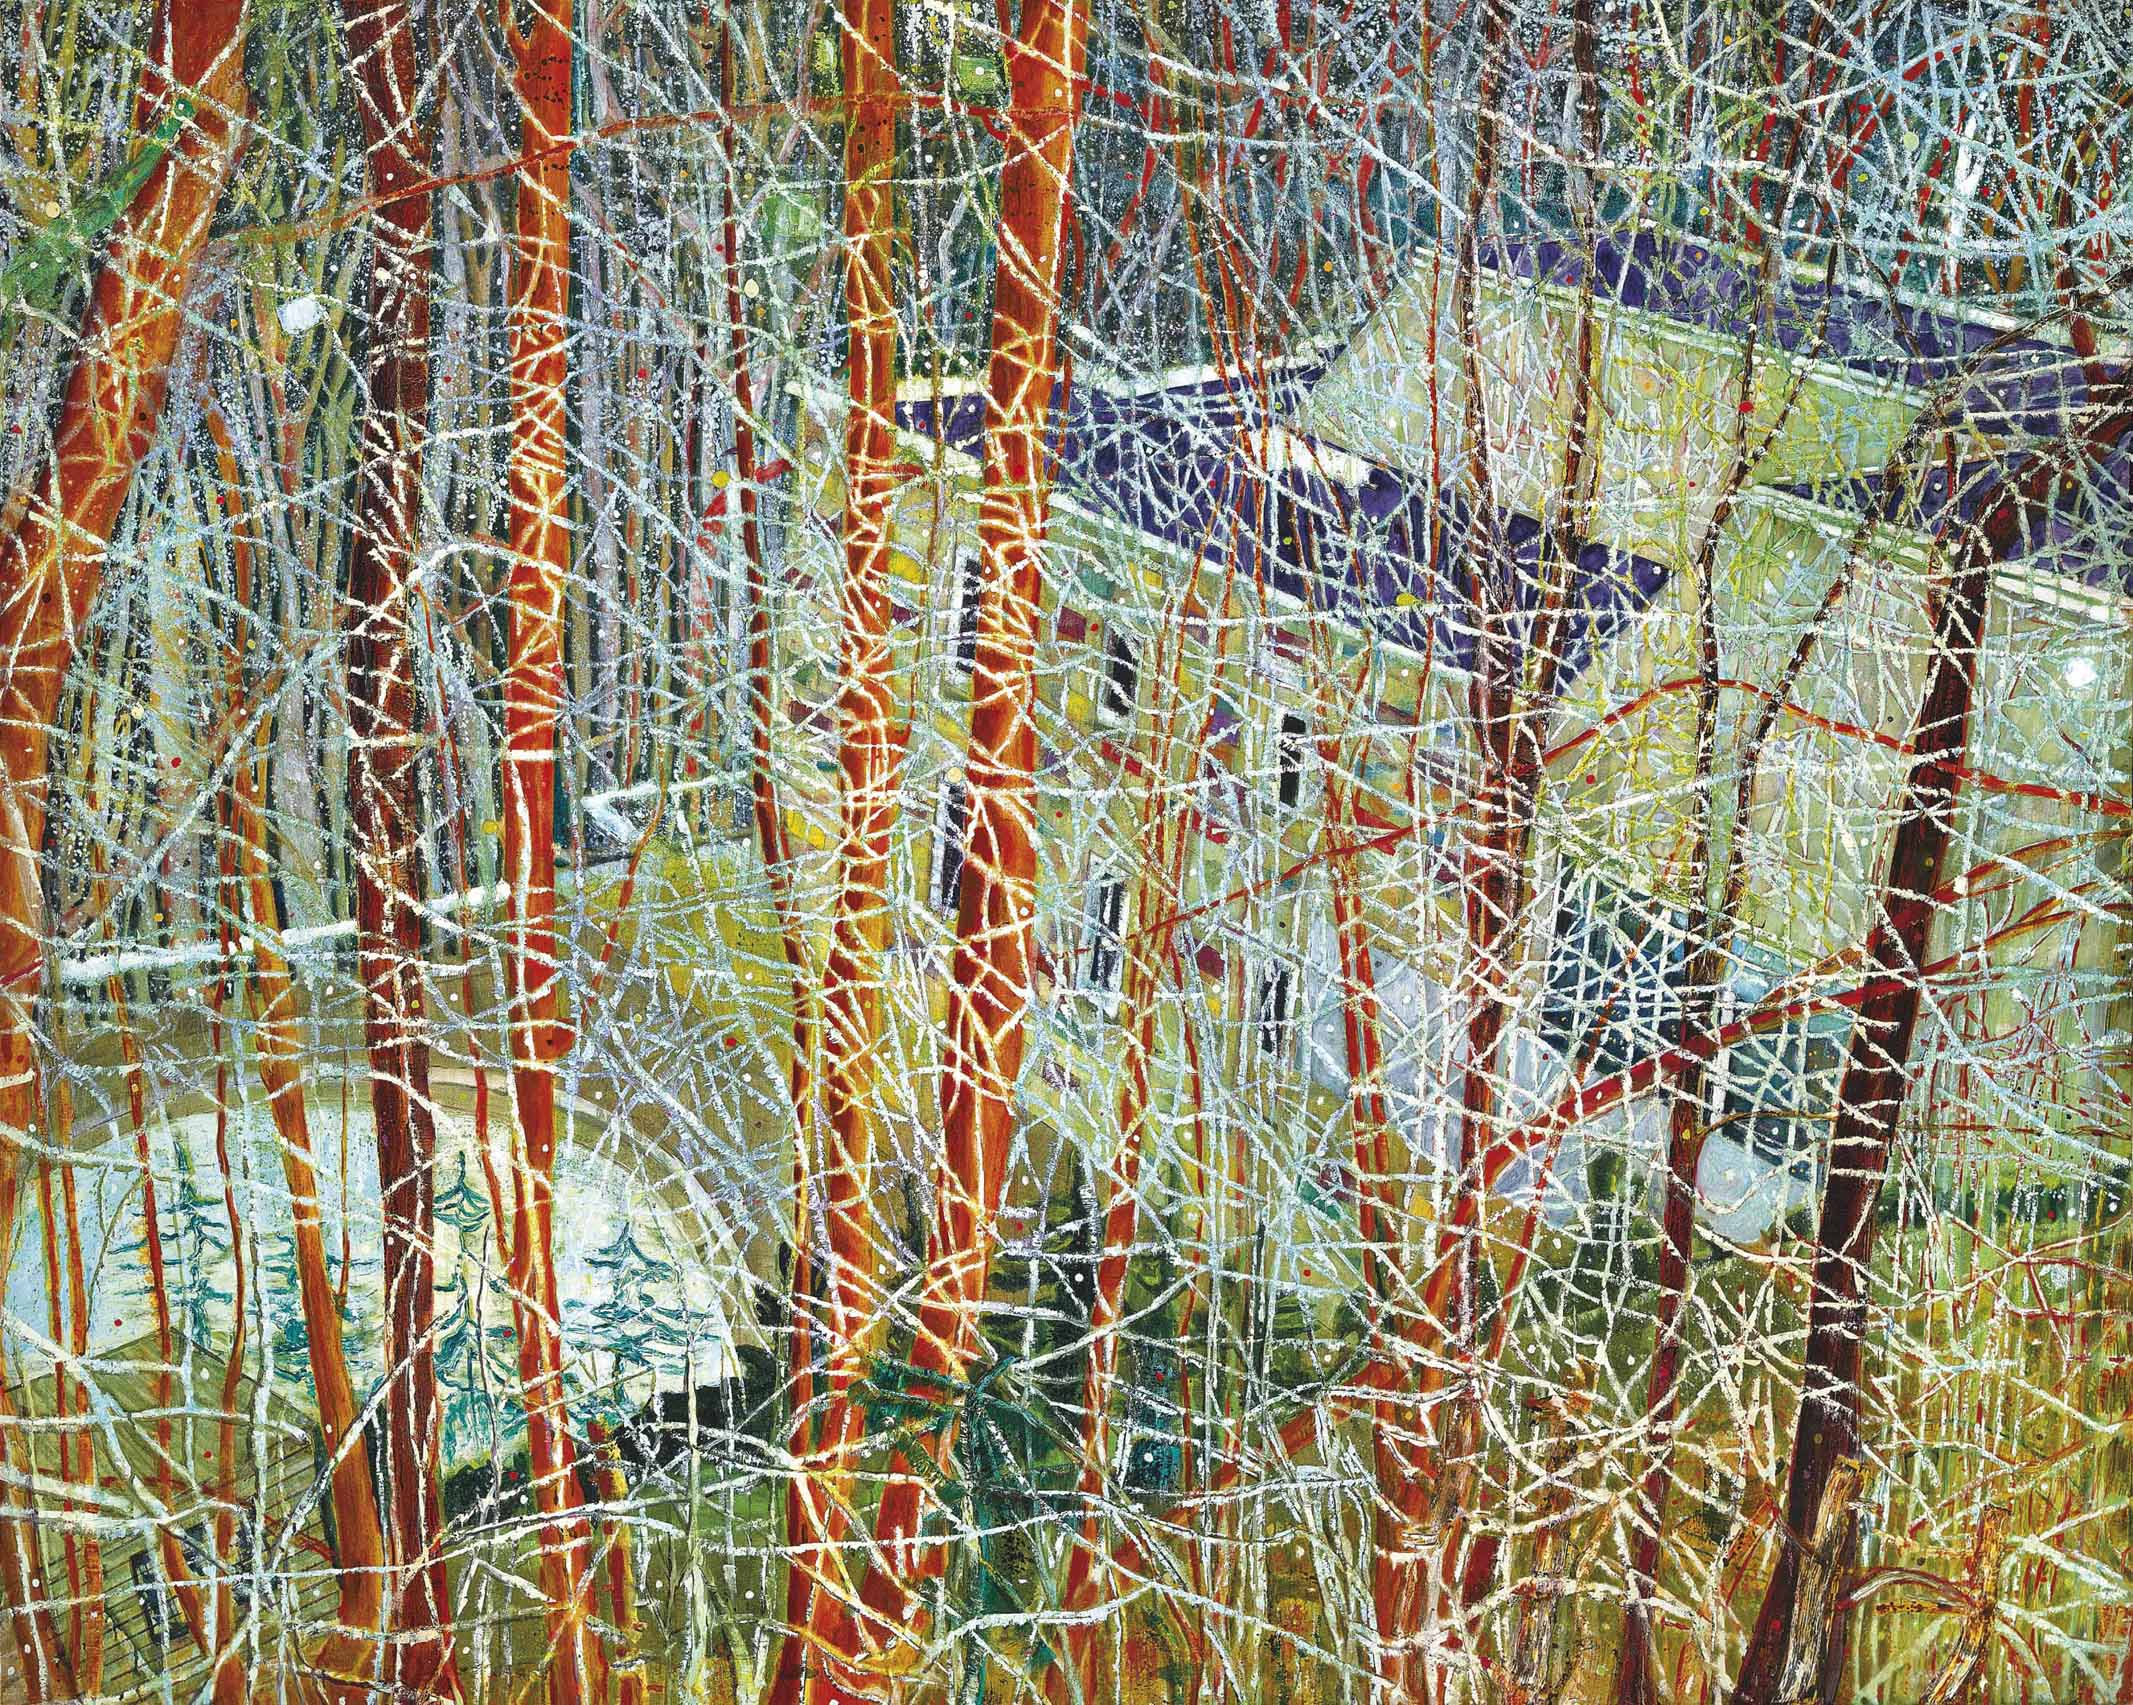 Peter Doig, Architect's Home in the Ravine  Saatchi Gallery, 1991